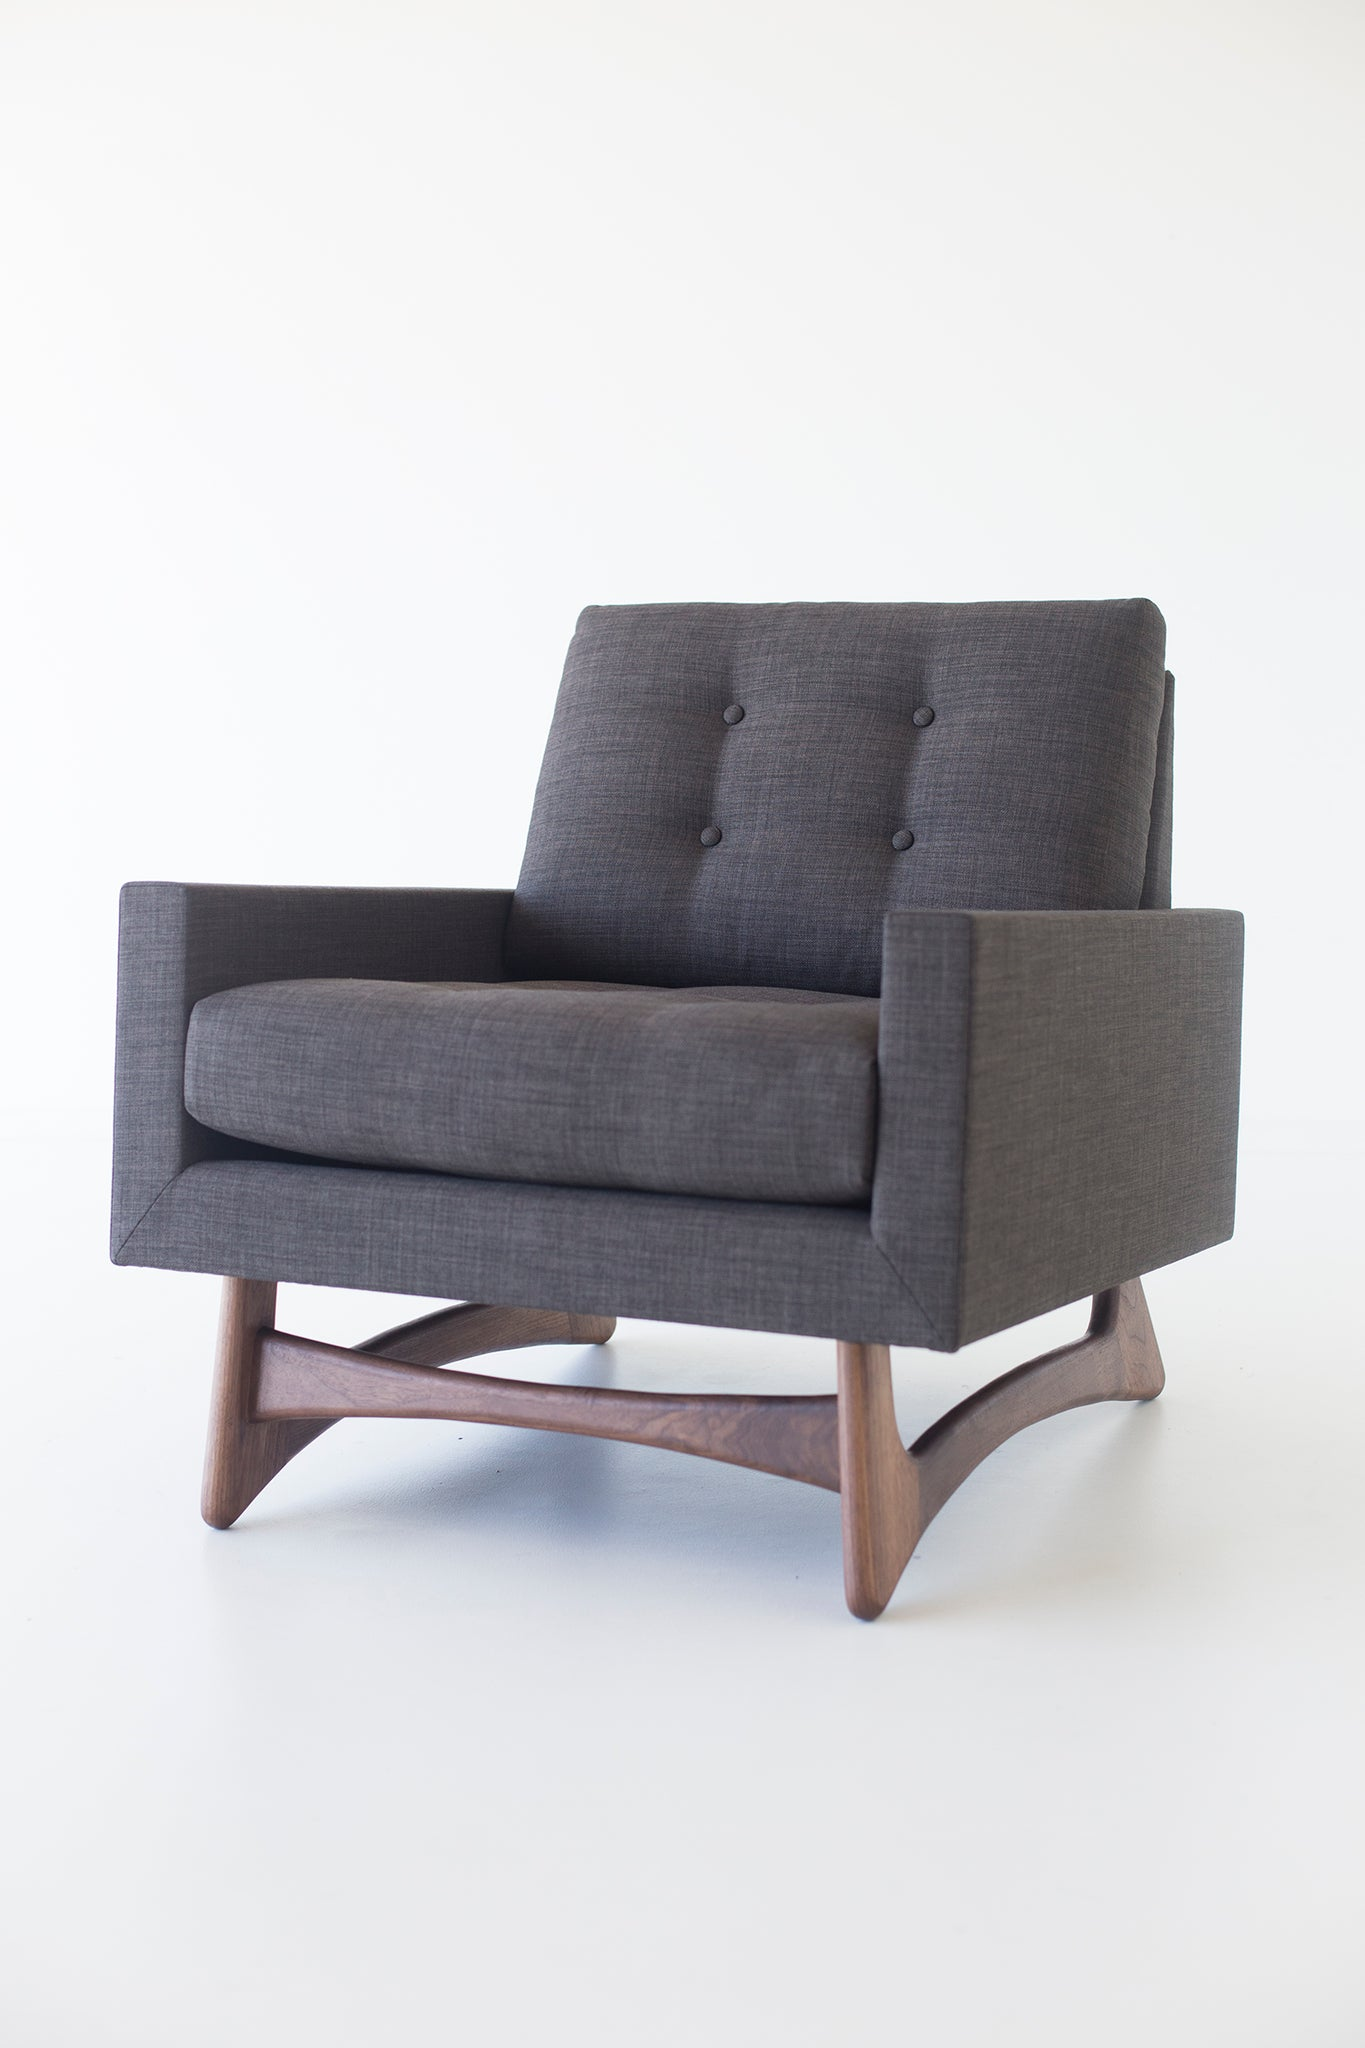 craft-associates-modern-lounge-chairs-1405-commercial-grey-fabric-07